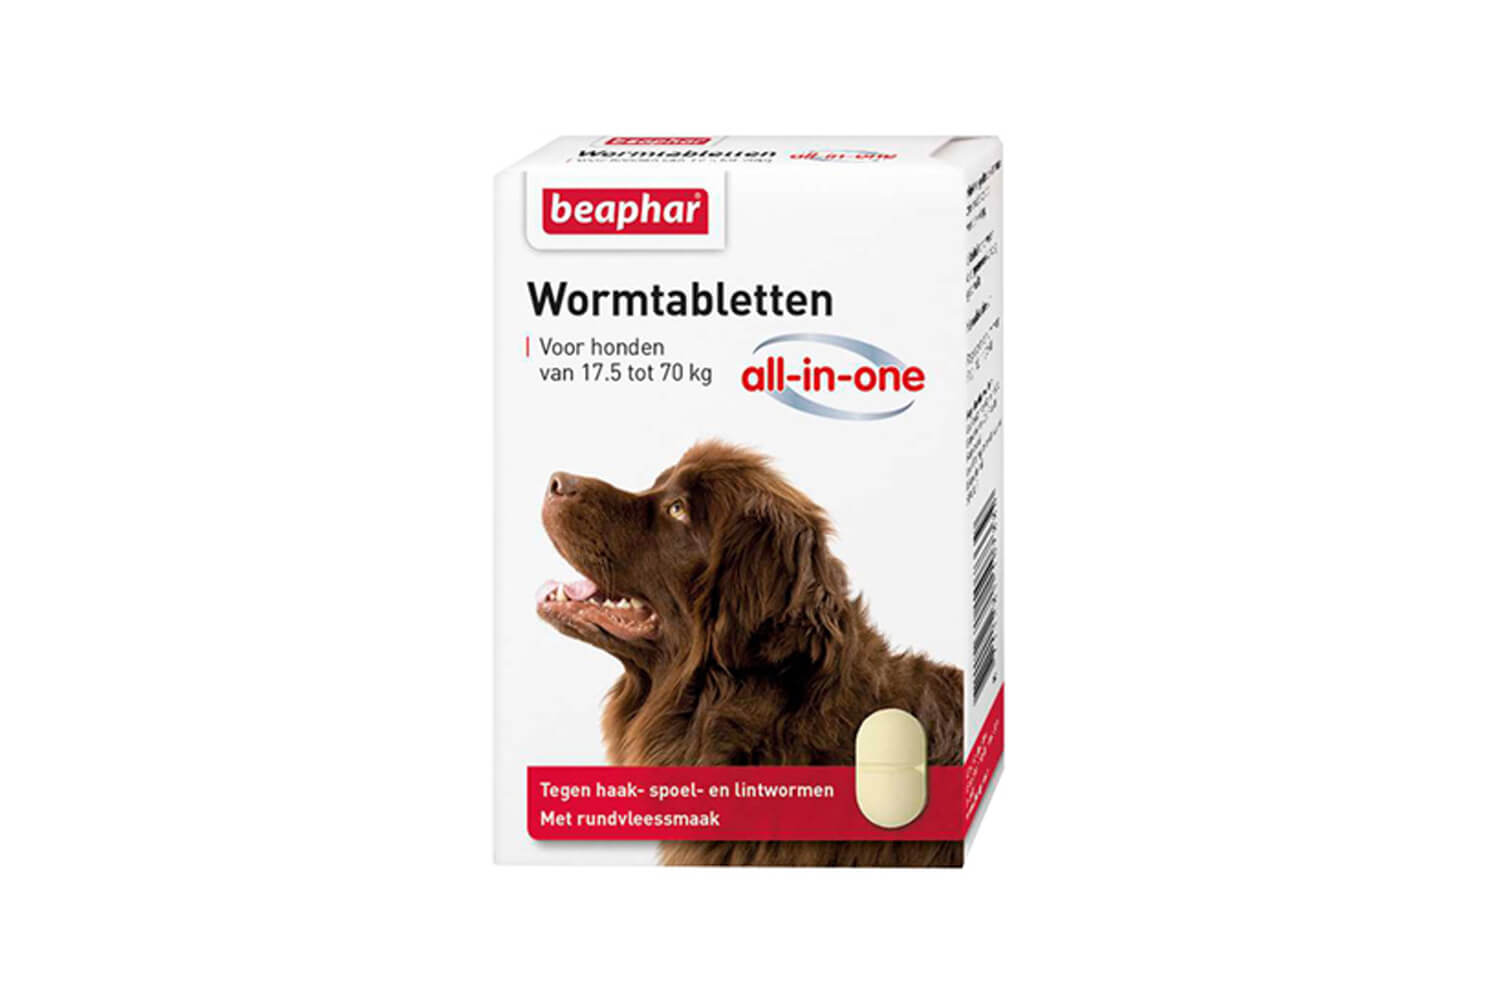 Beaphar Wormtabletten All-in-One 17,5 tot 70 kg tegen wormen.